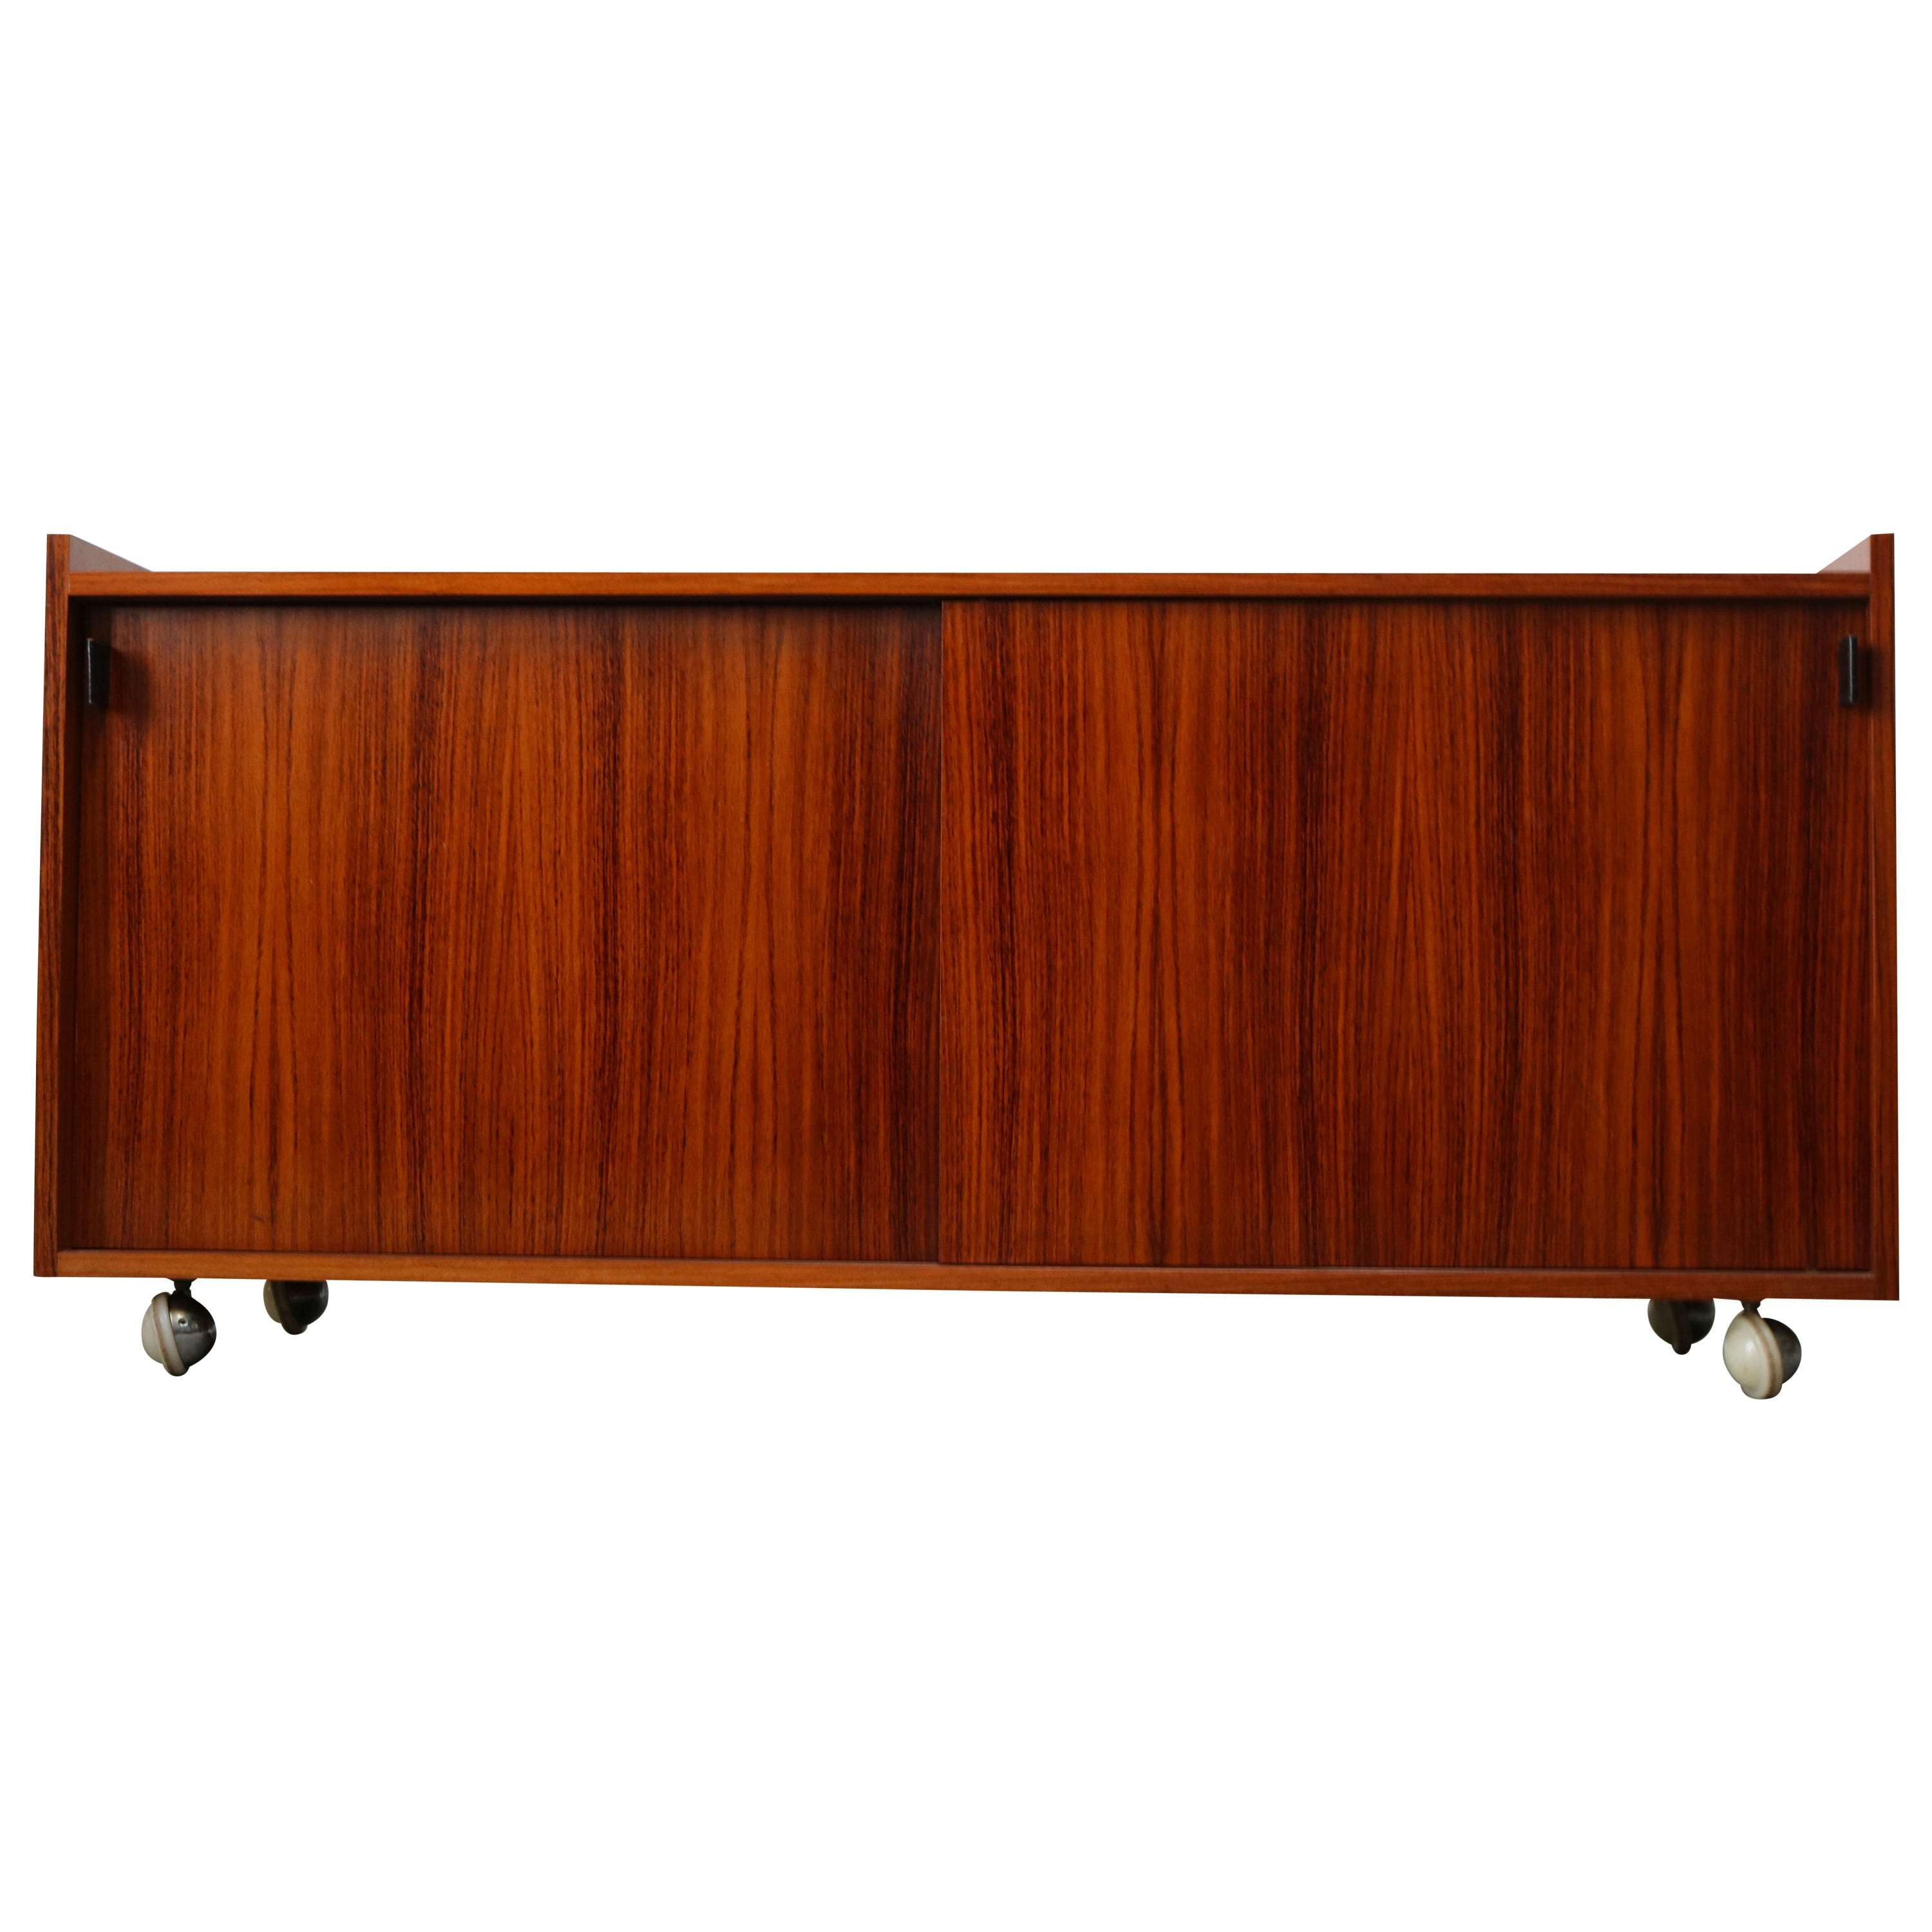 Design Credenza / Sideboard by Florence Knoll for De Coene Leather Rosewood 1960